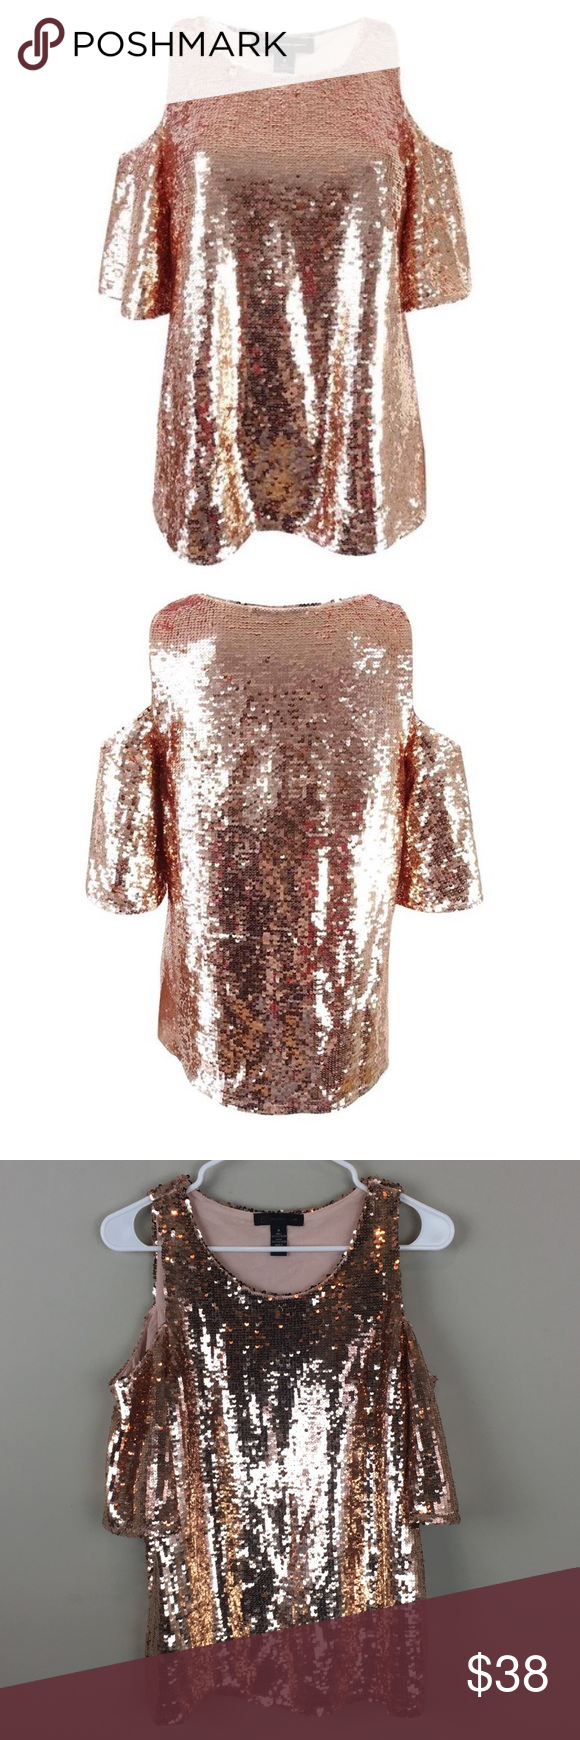 7847af197424eb INC Rose Gold Sequin Cold Shoulder Top - B5 Super cute top that s very  sparkly to